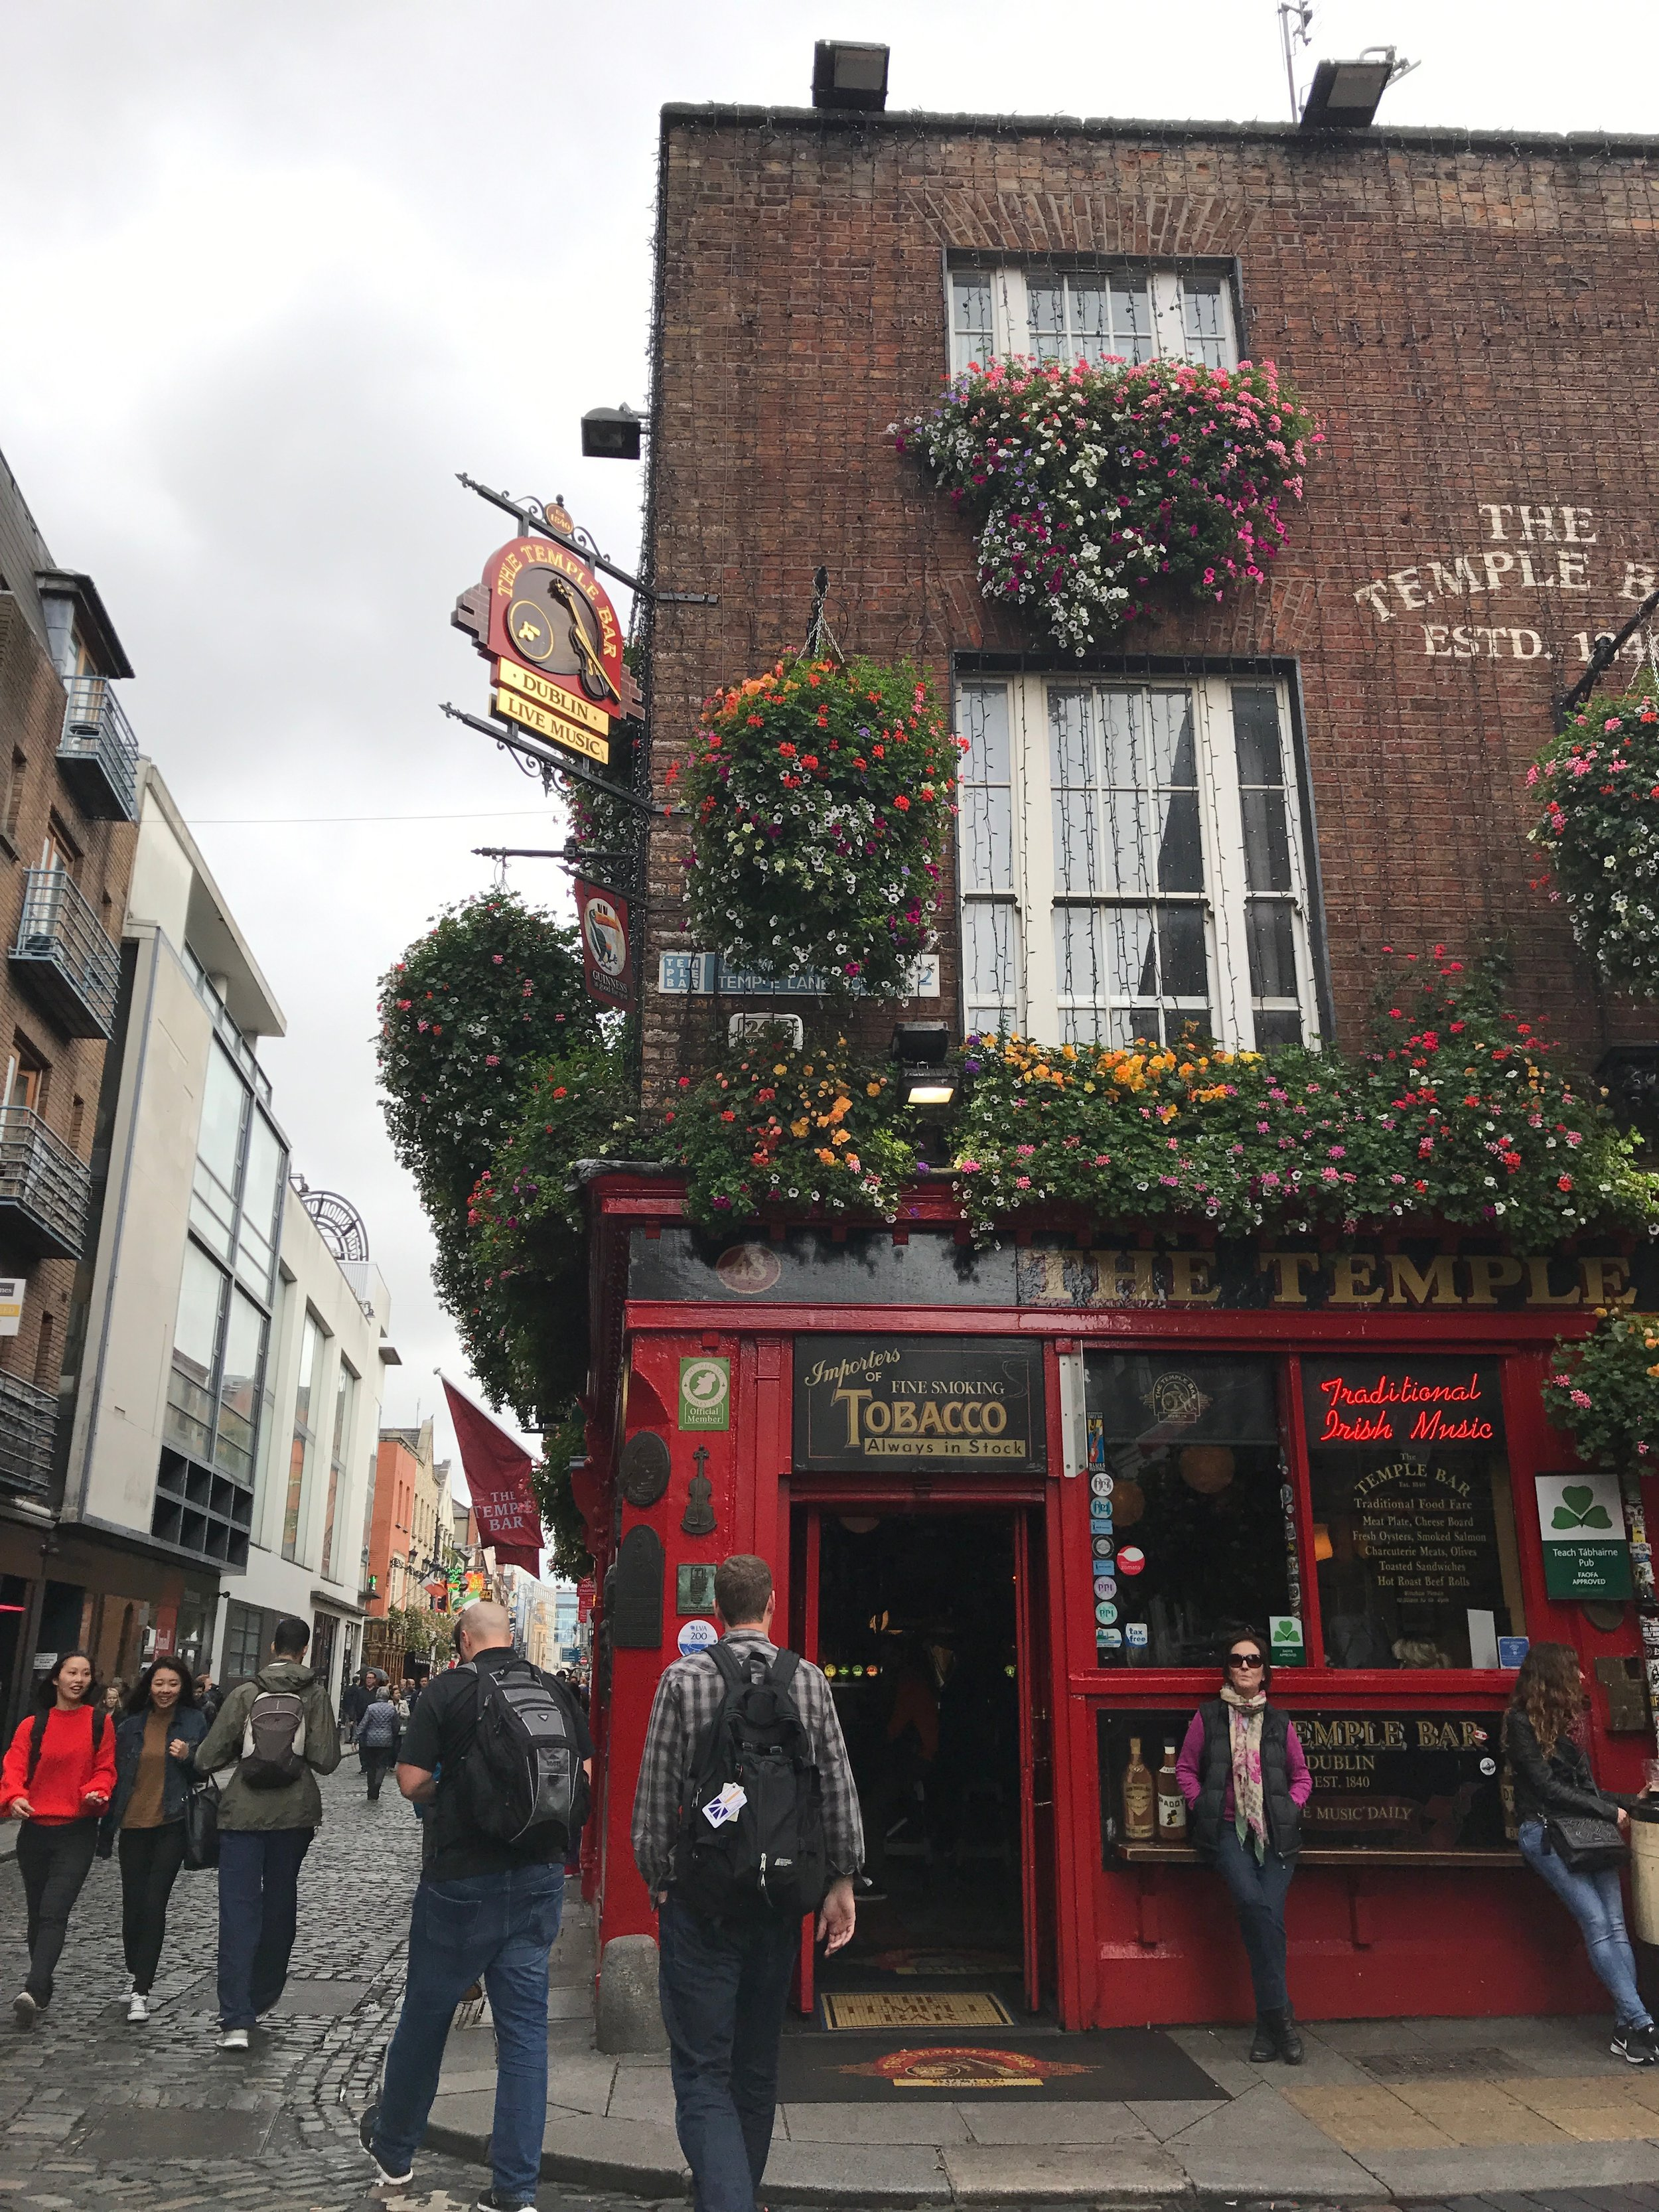 The famous Temple Bar Pub, in none other than the Temple Bar neighborhood.